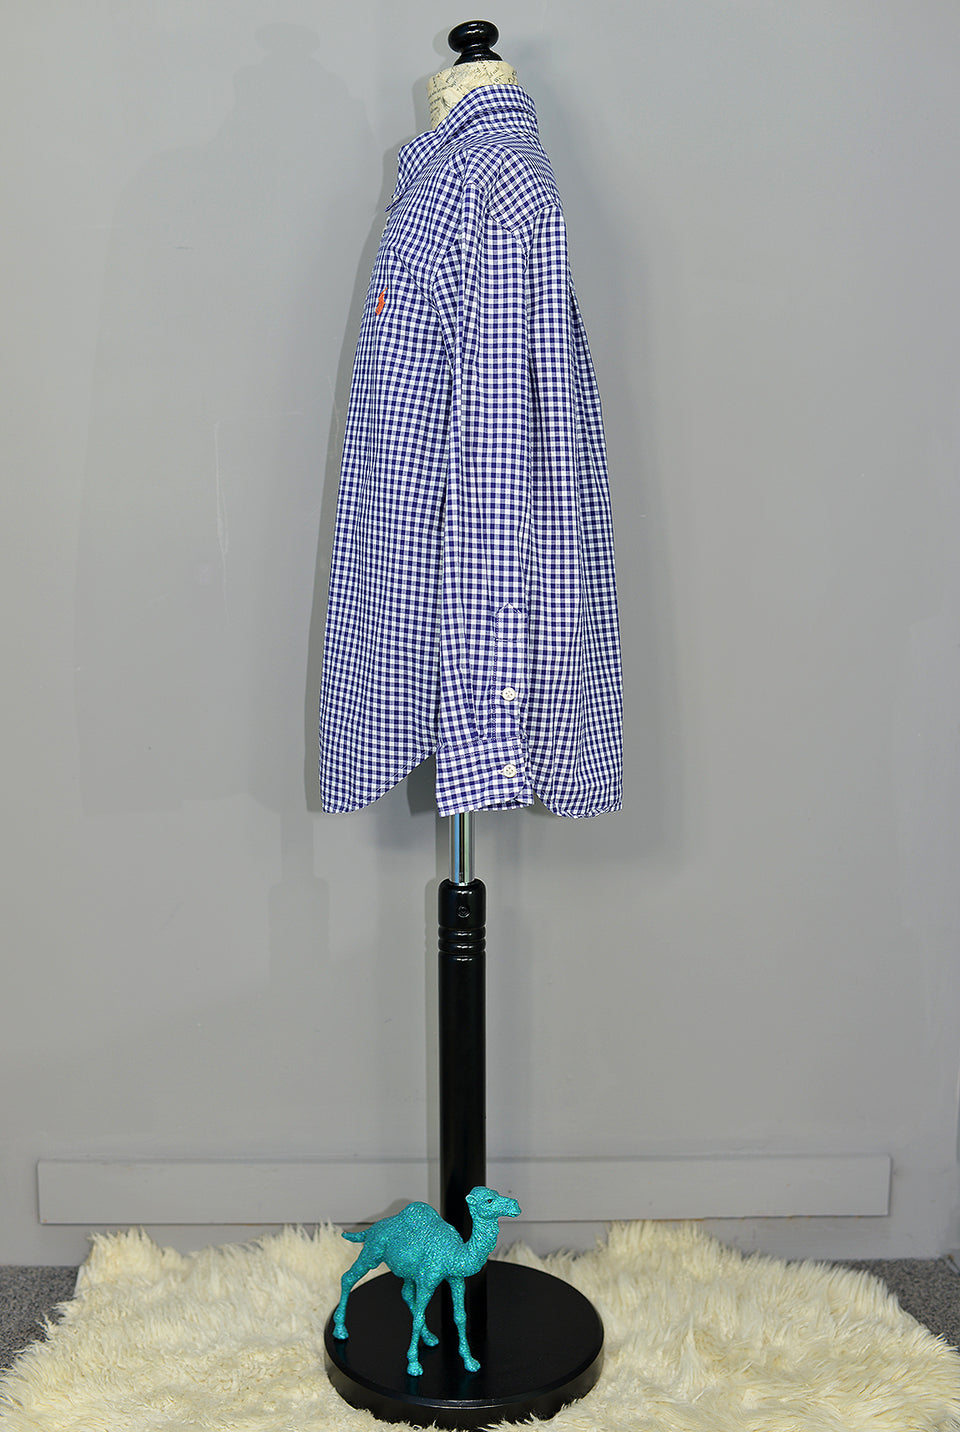 RALPH LAUREN Boys Blue & White Gingham Check Shirt, Size M (10-12). Pre-loved.